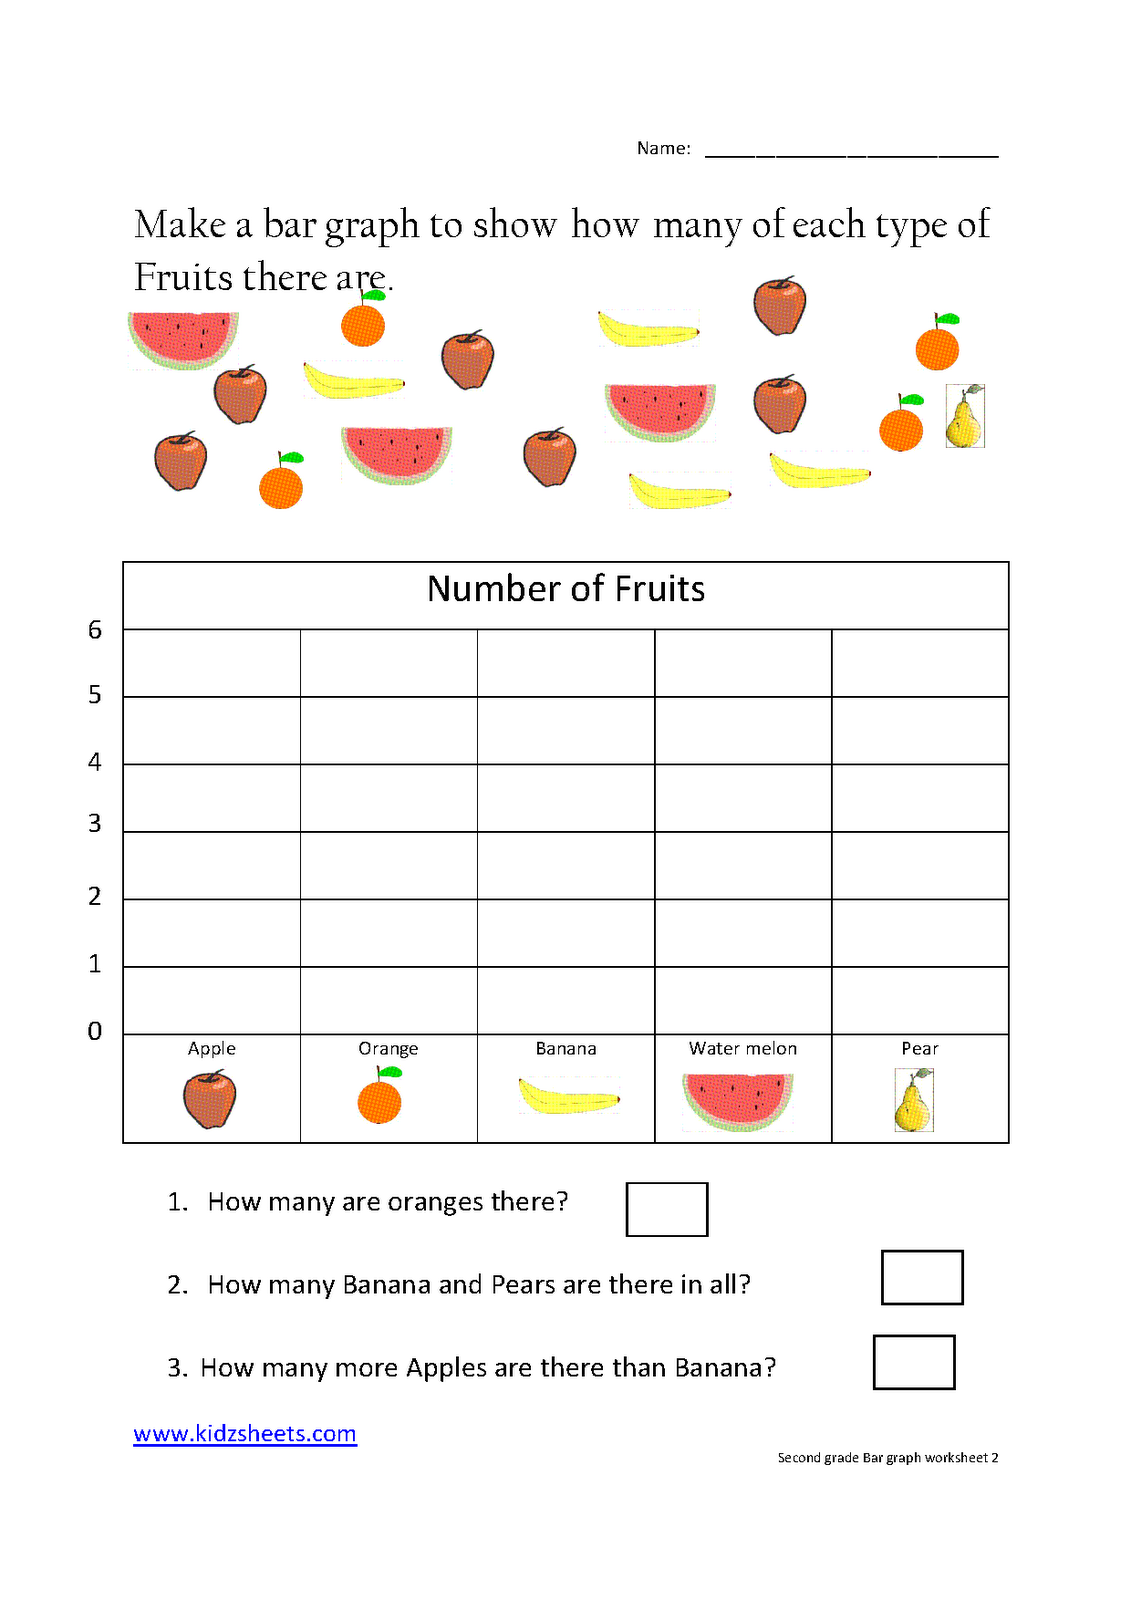 small resolution of Kidz Worksheets: Second Grade Bar Graph Worksheet2